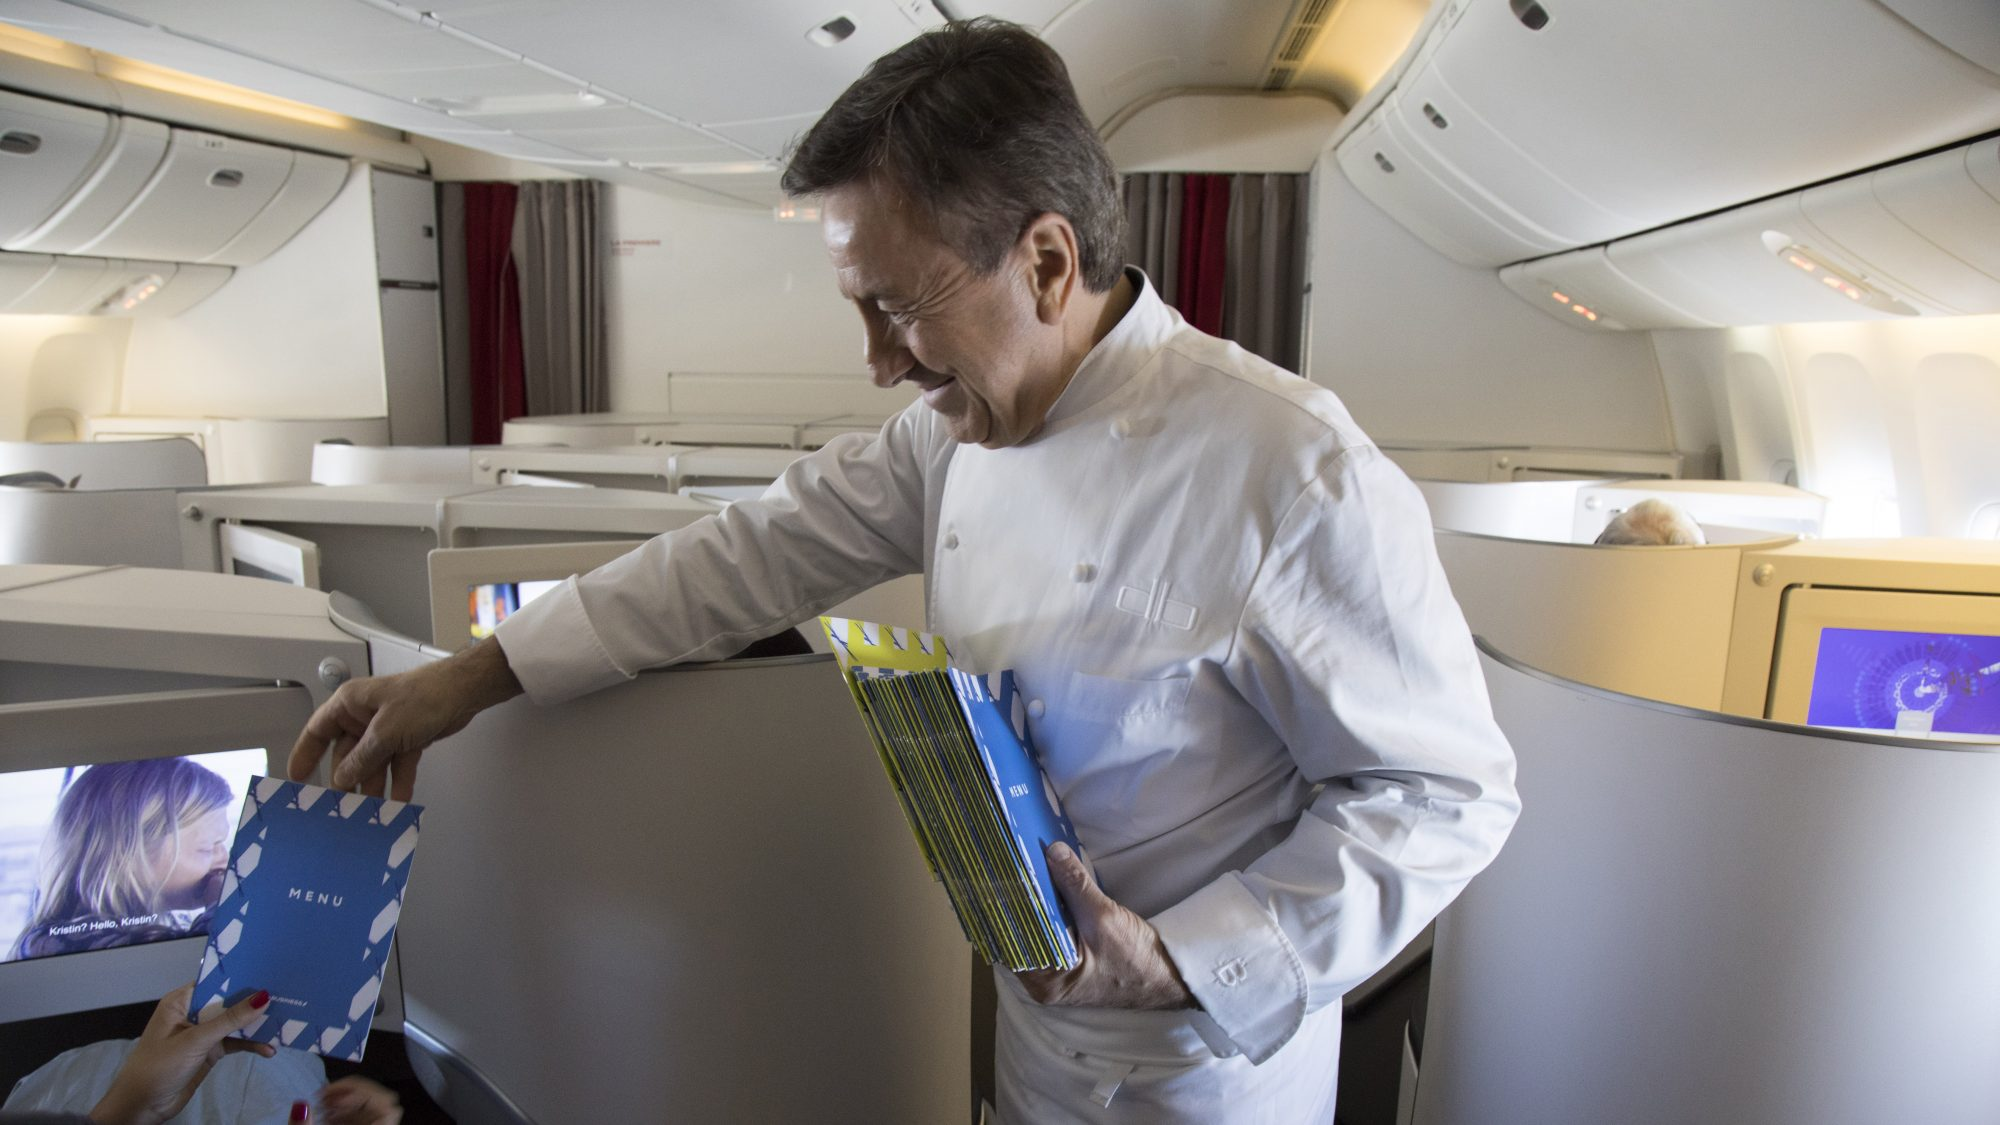 chef Daniel Boulud on an Air France flight